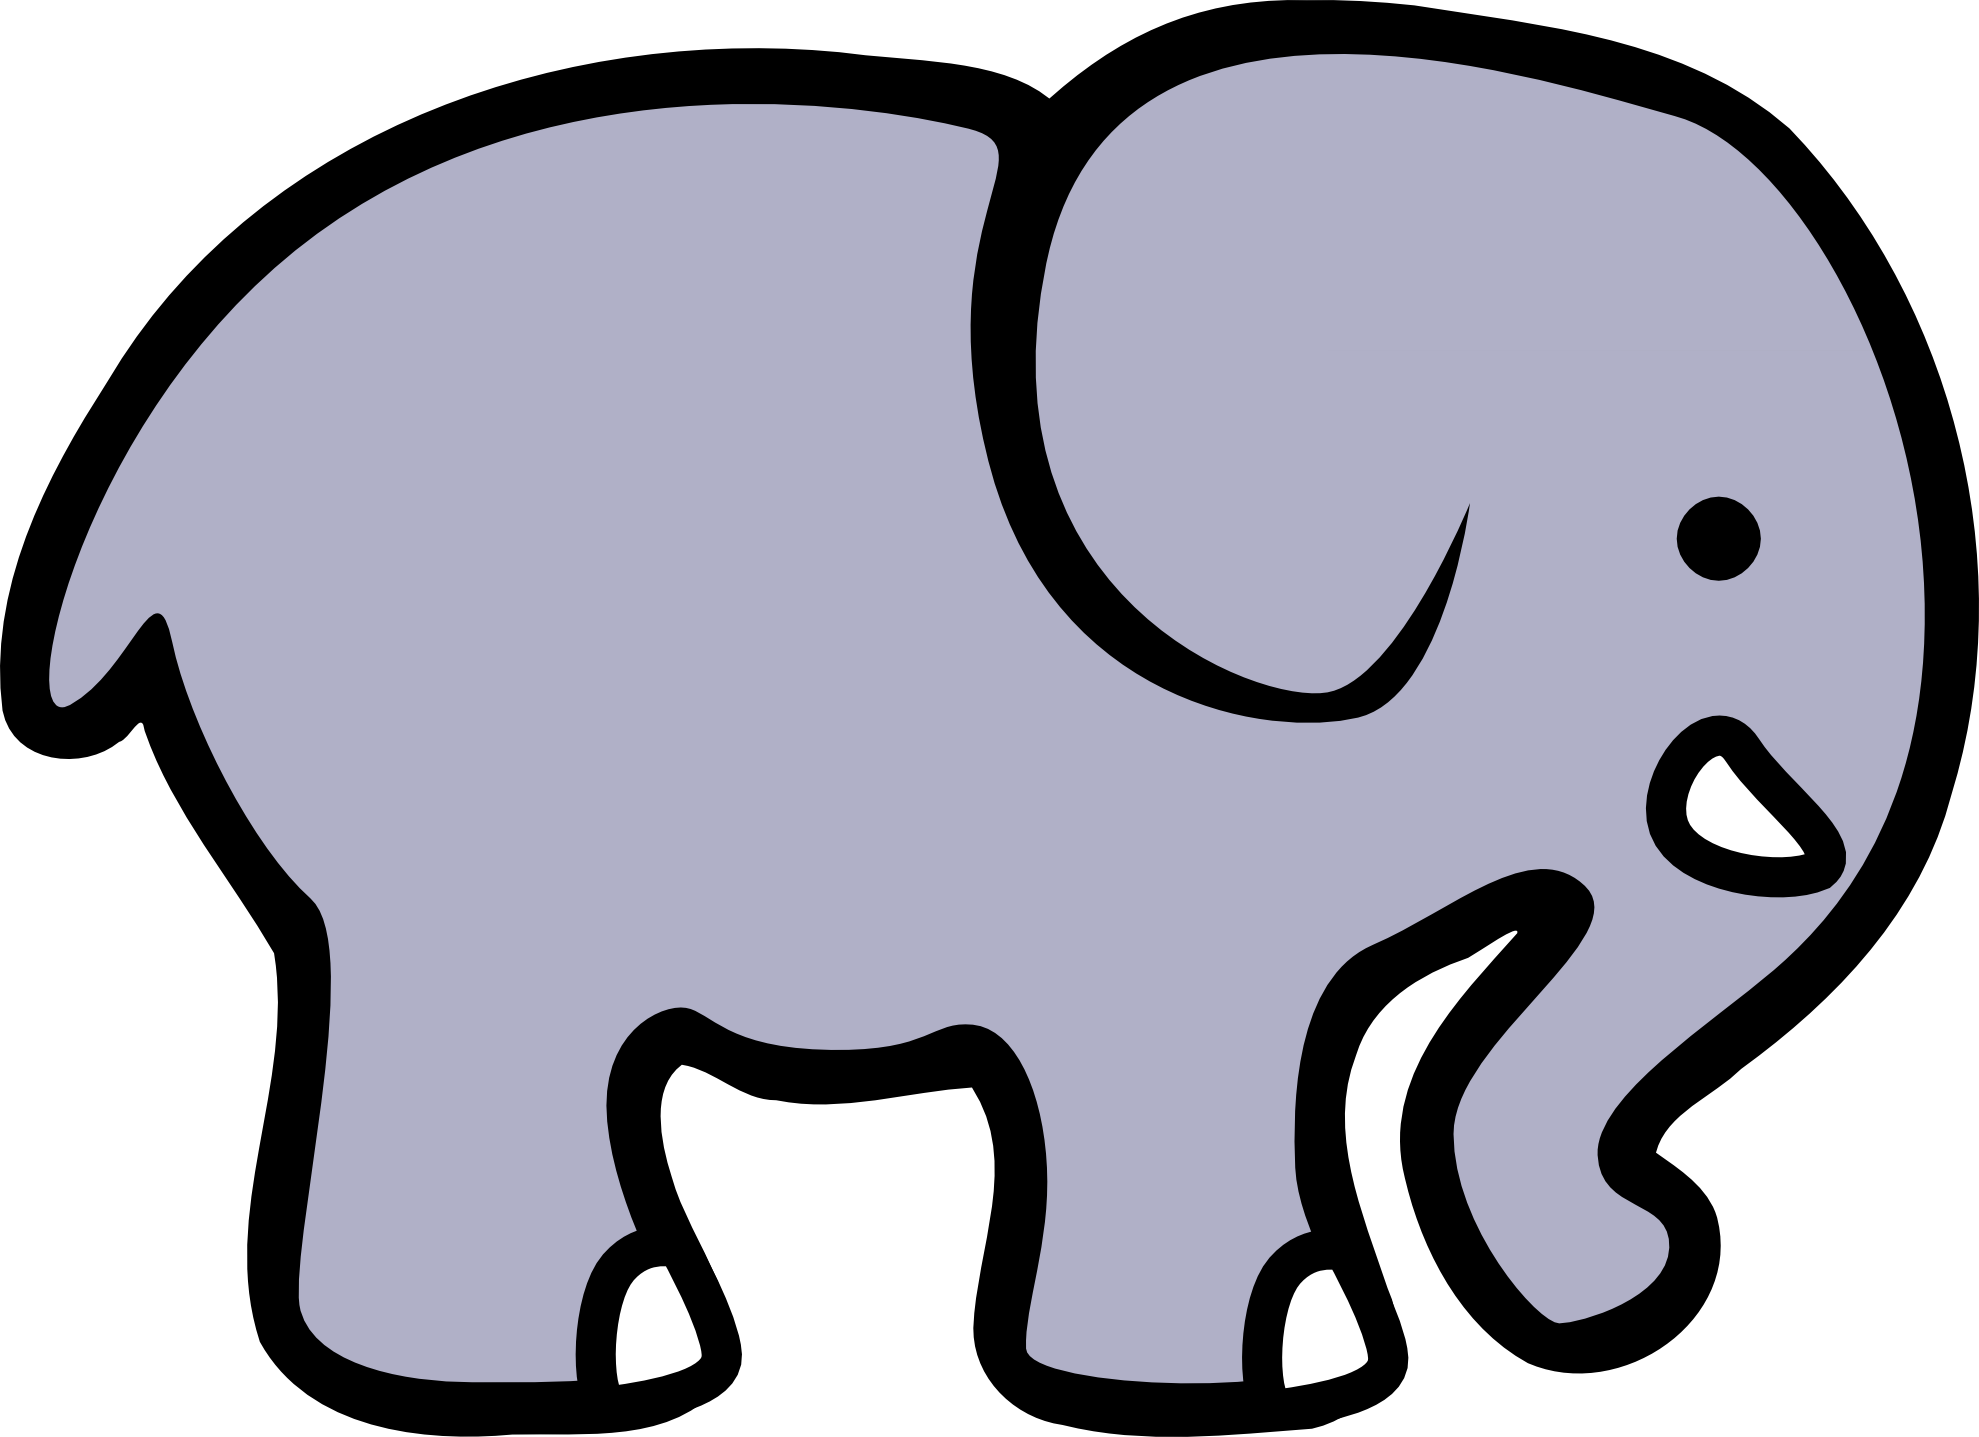 Elephant clip art black and white free c-Elephant clip art black and white free clipart 2-12